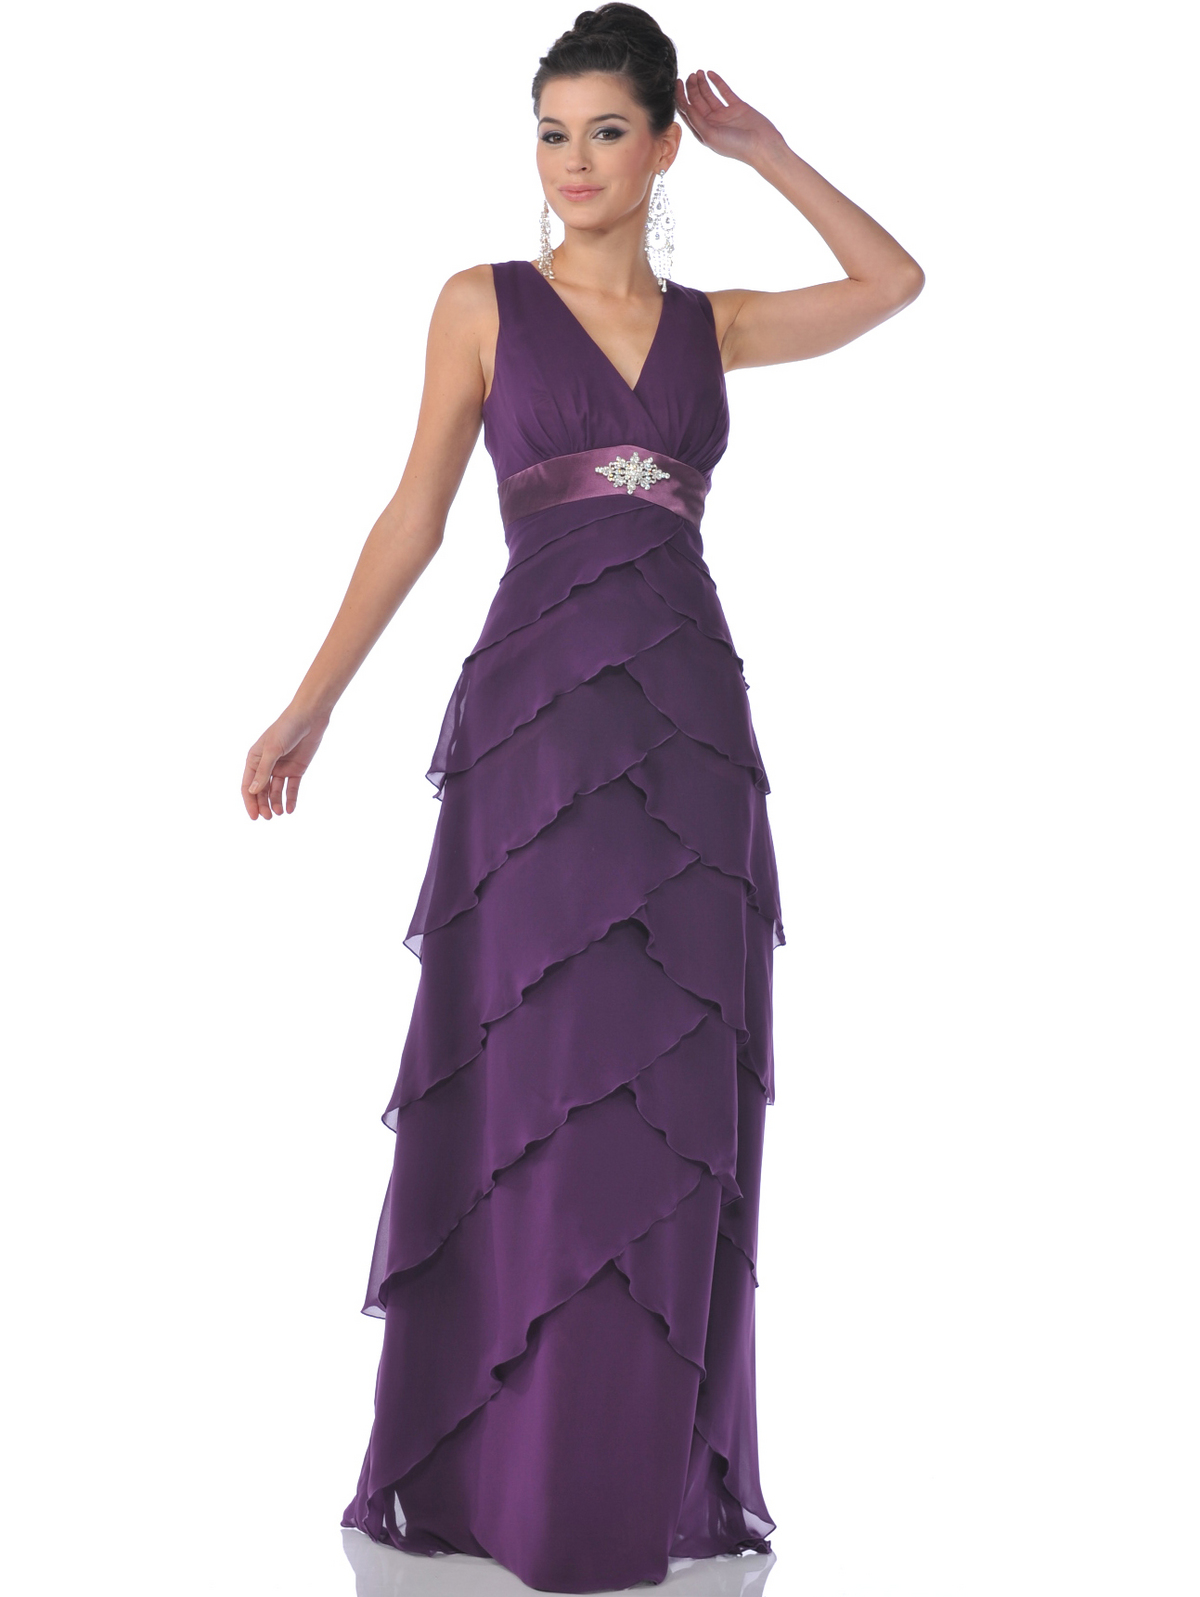 Chiffon Tiered Evening Dress Sung Boutique L A